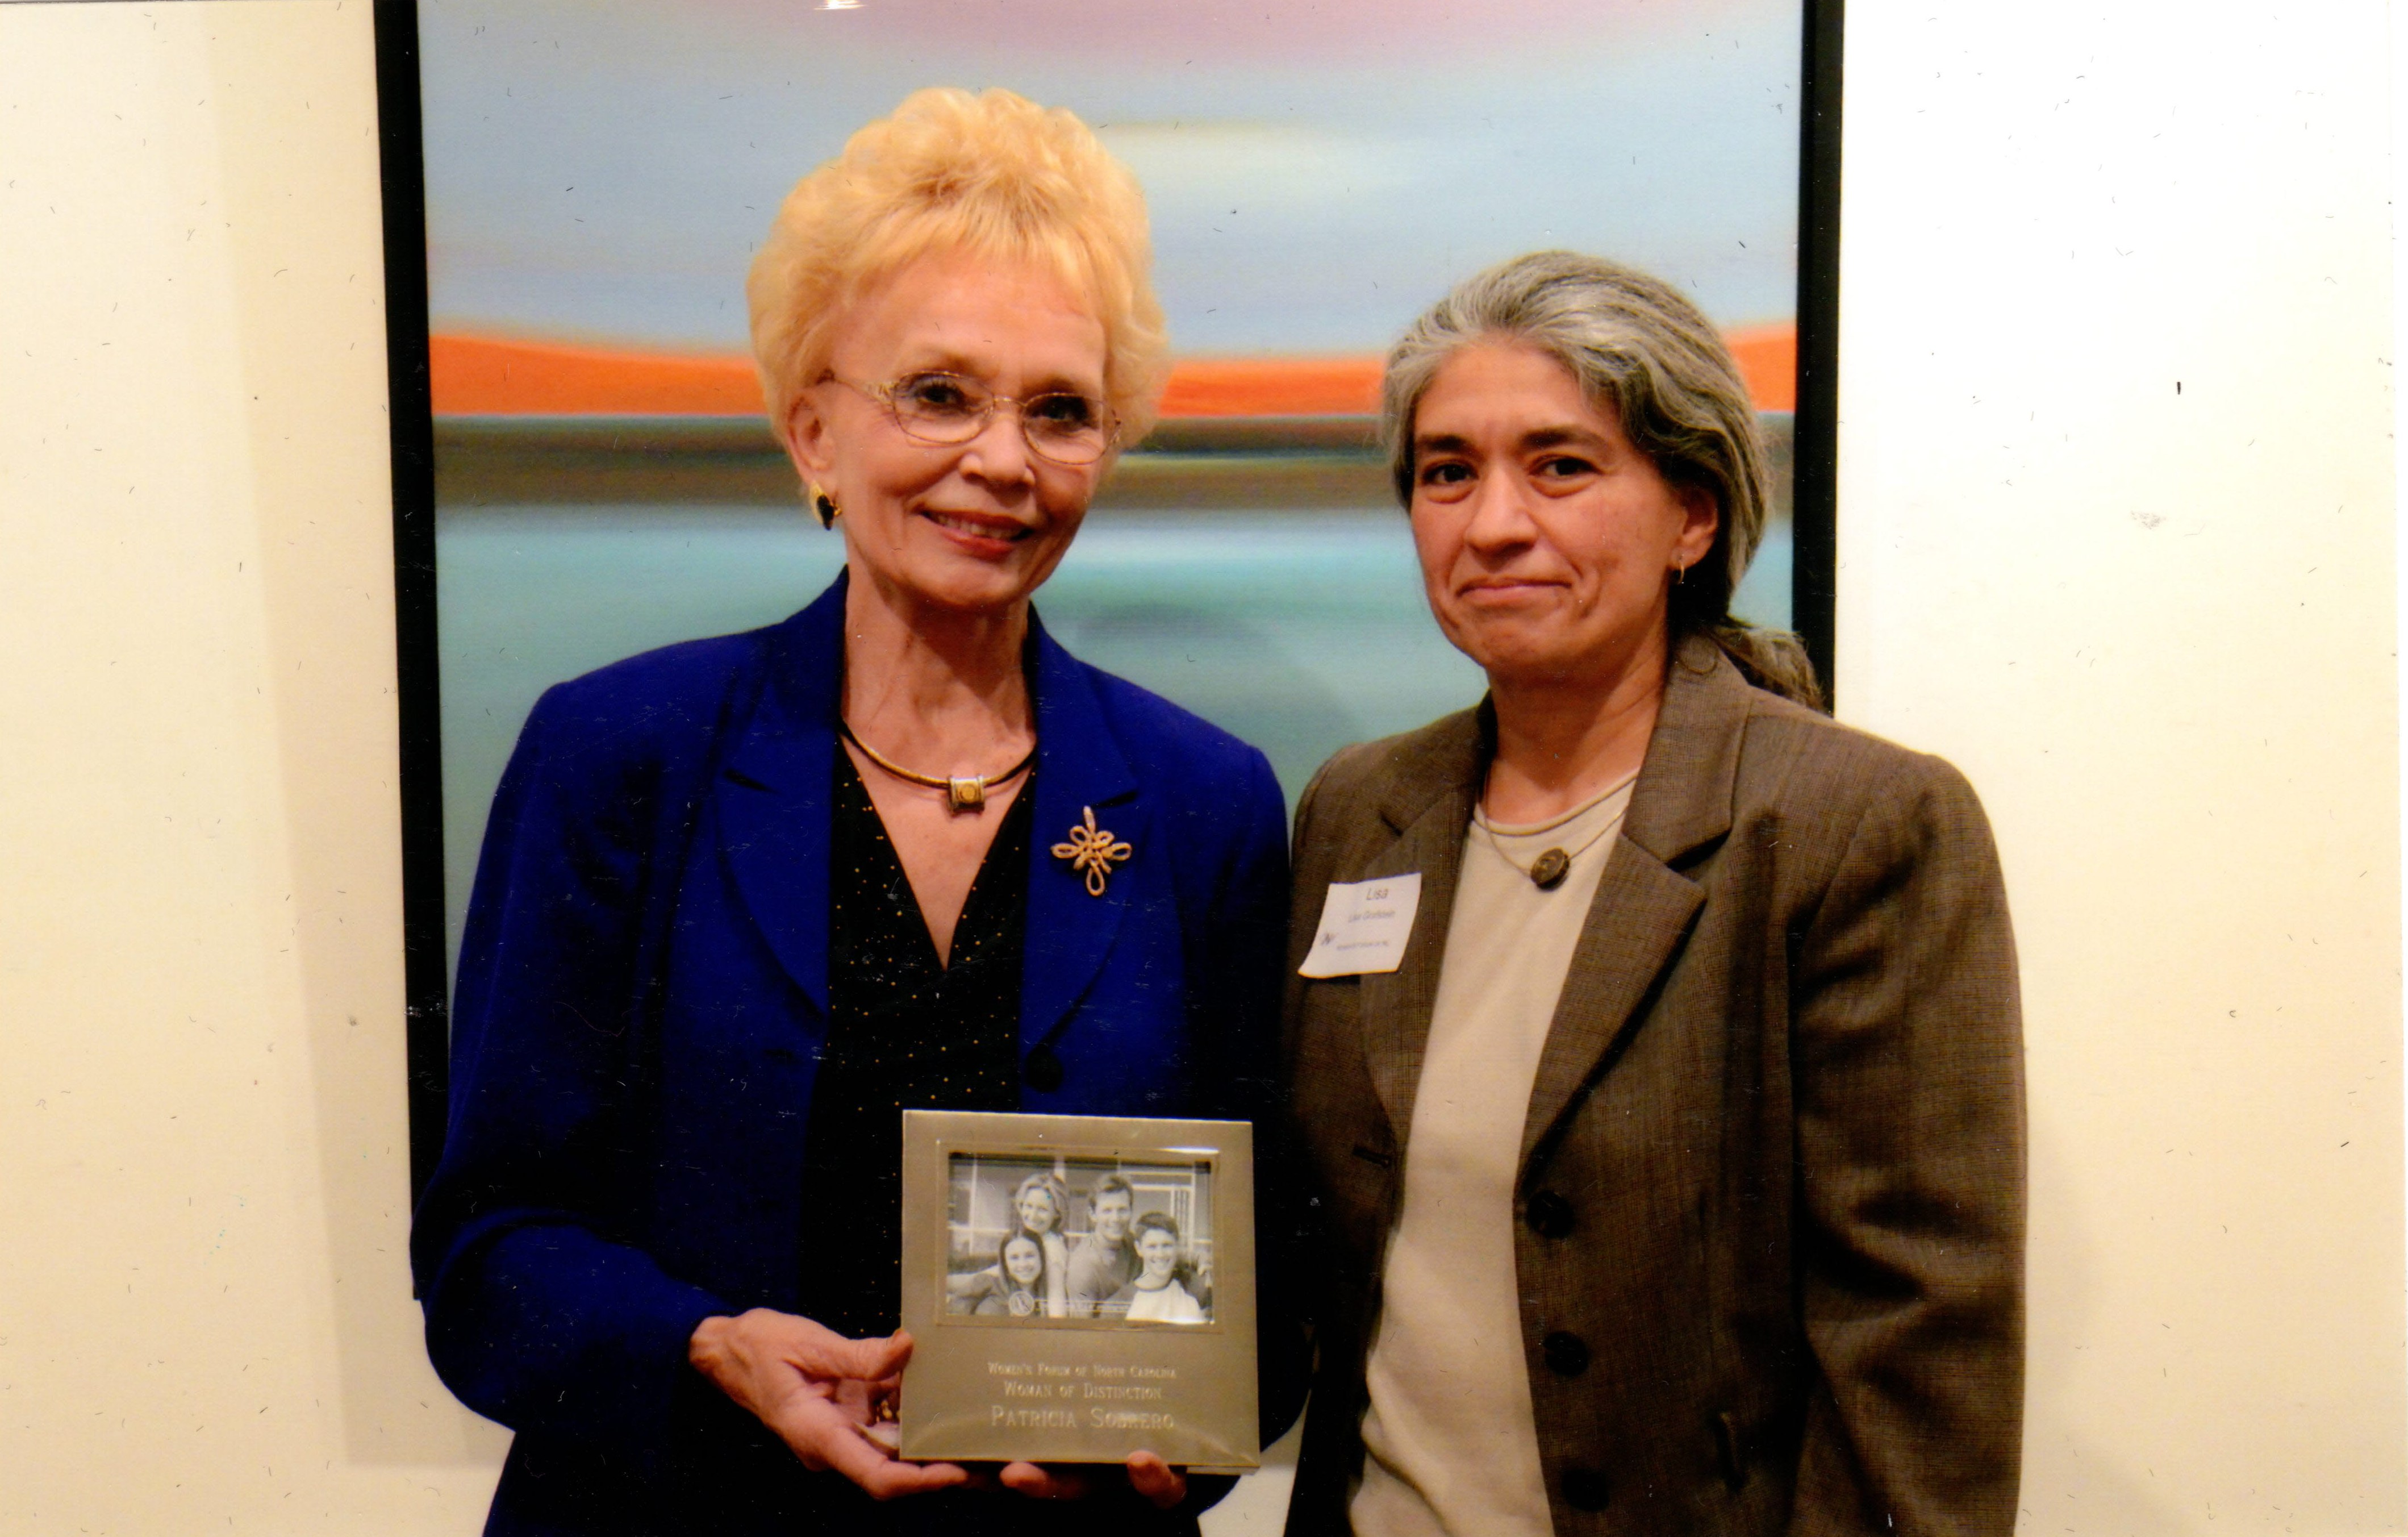 Picture of Dr. Sobrero receiving her award